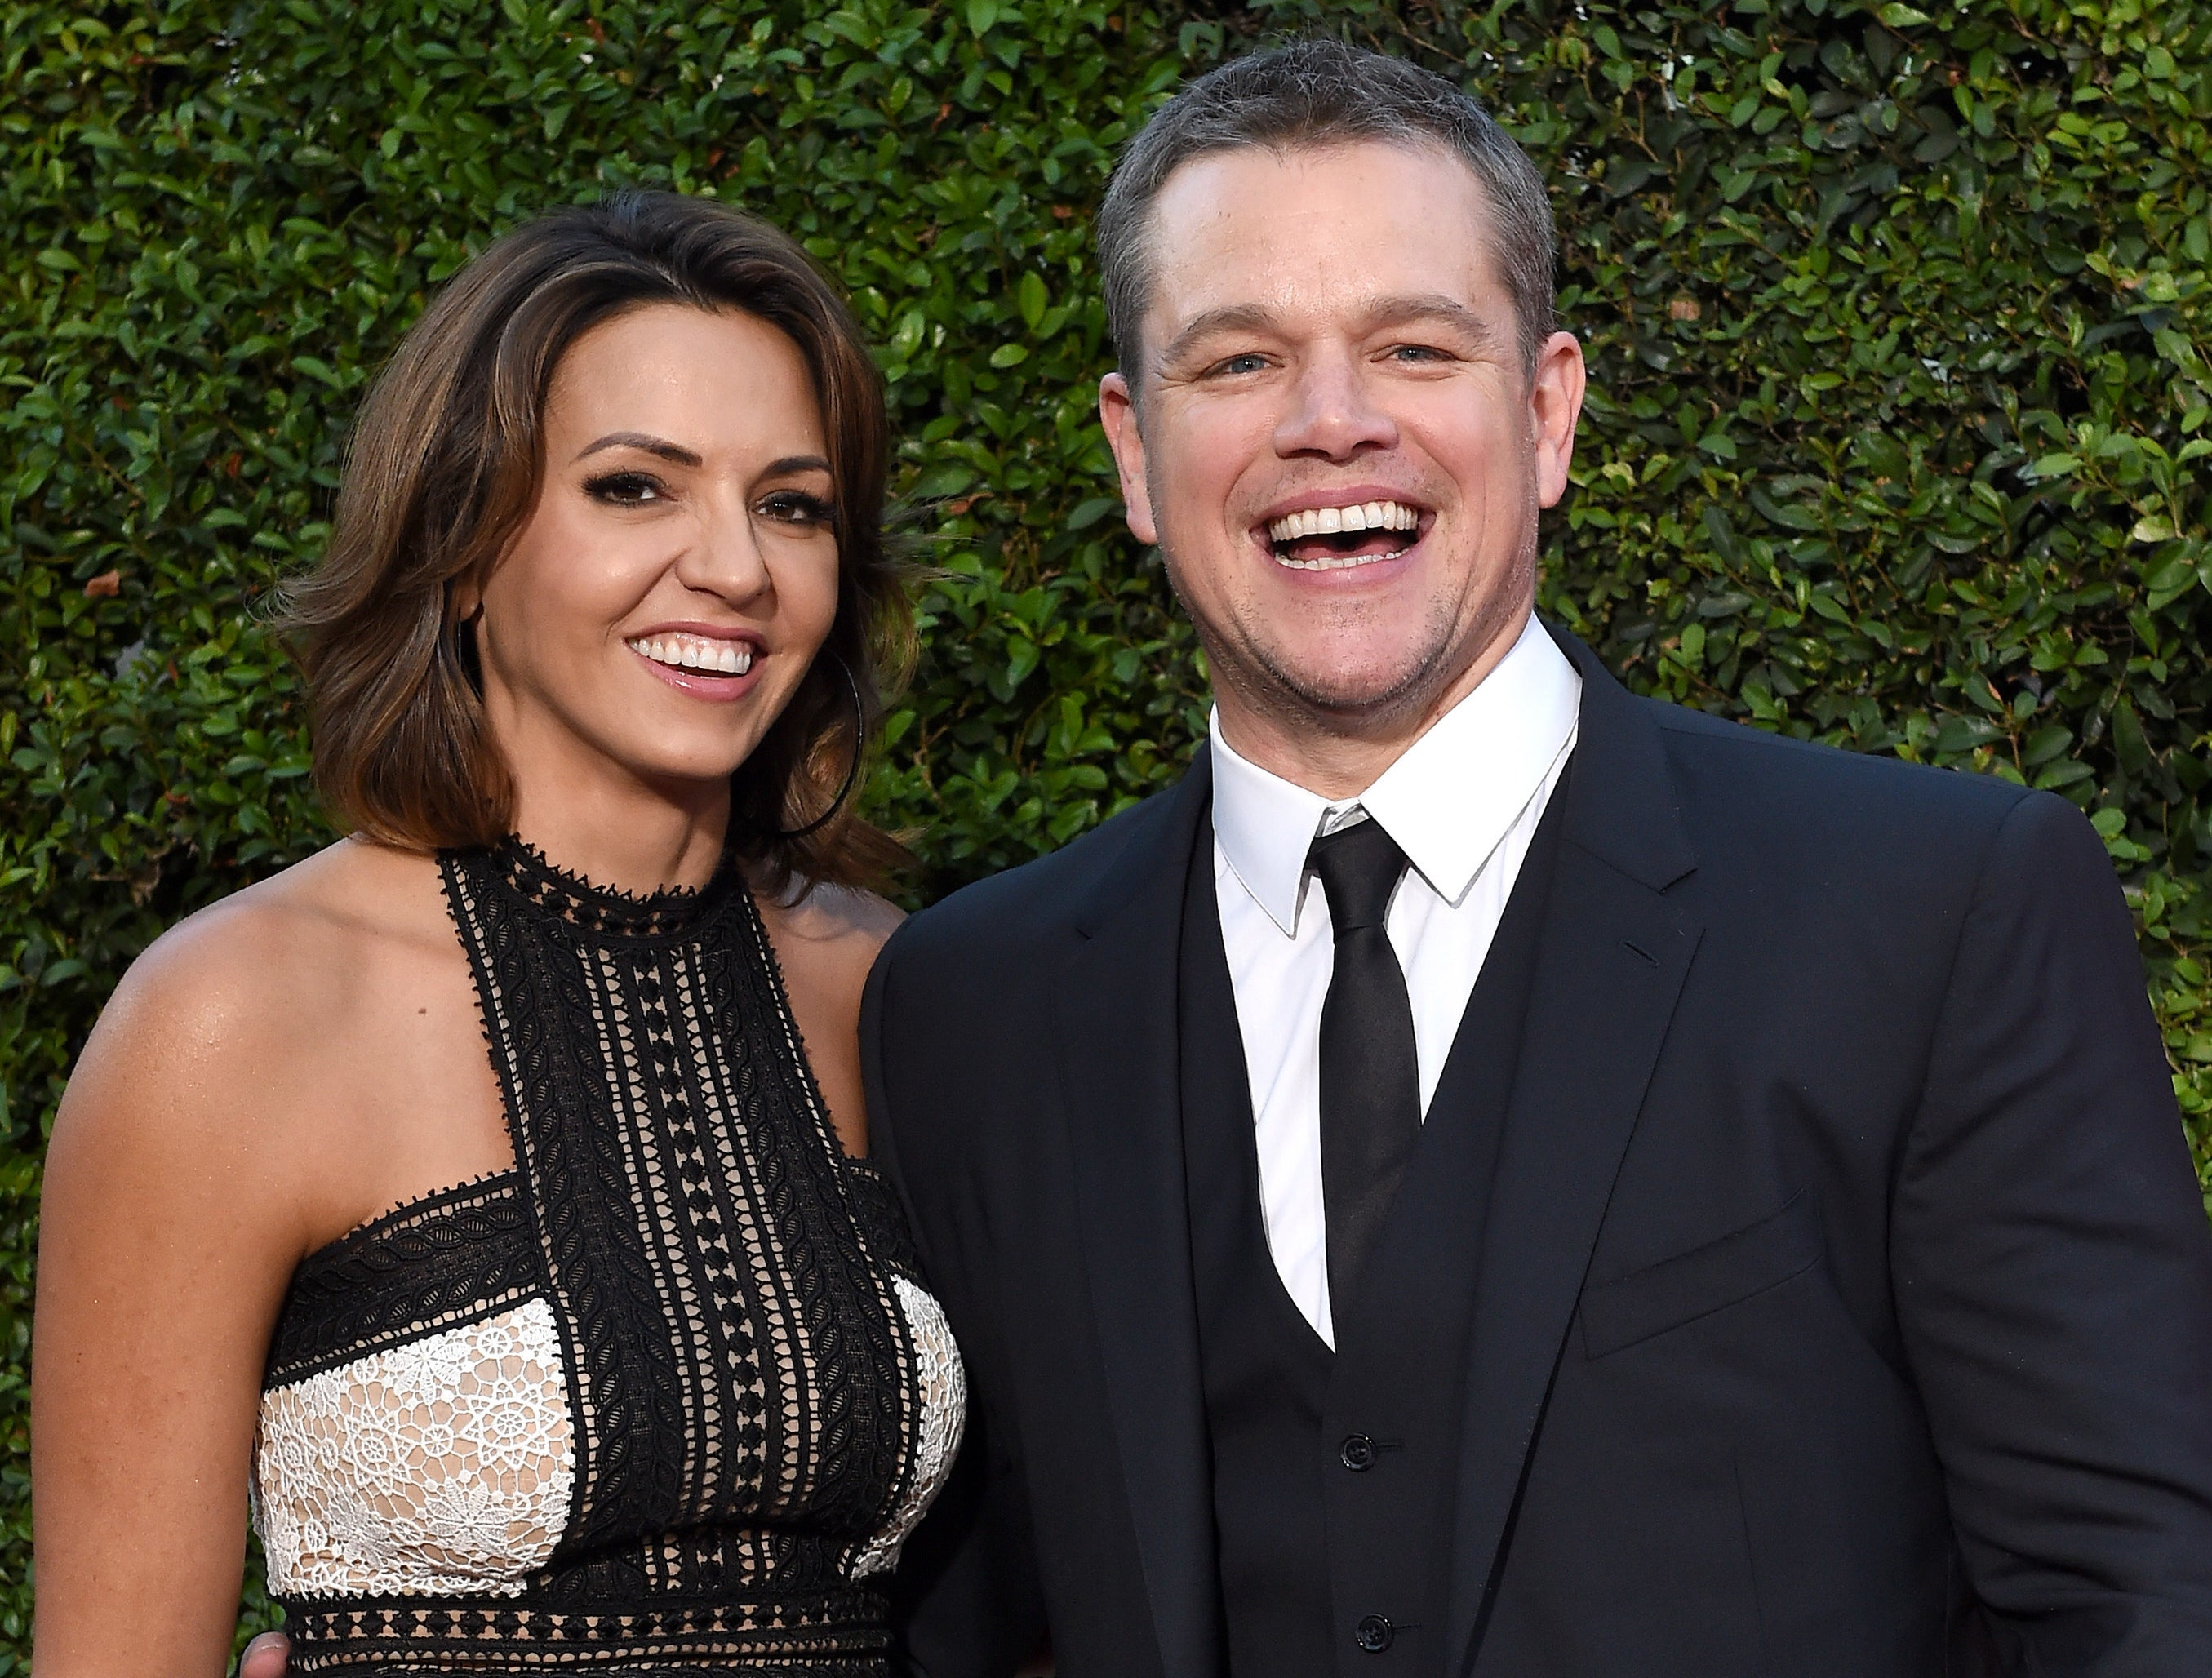 Matt smiles while posing with his wife